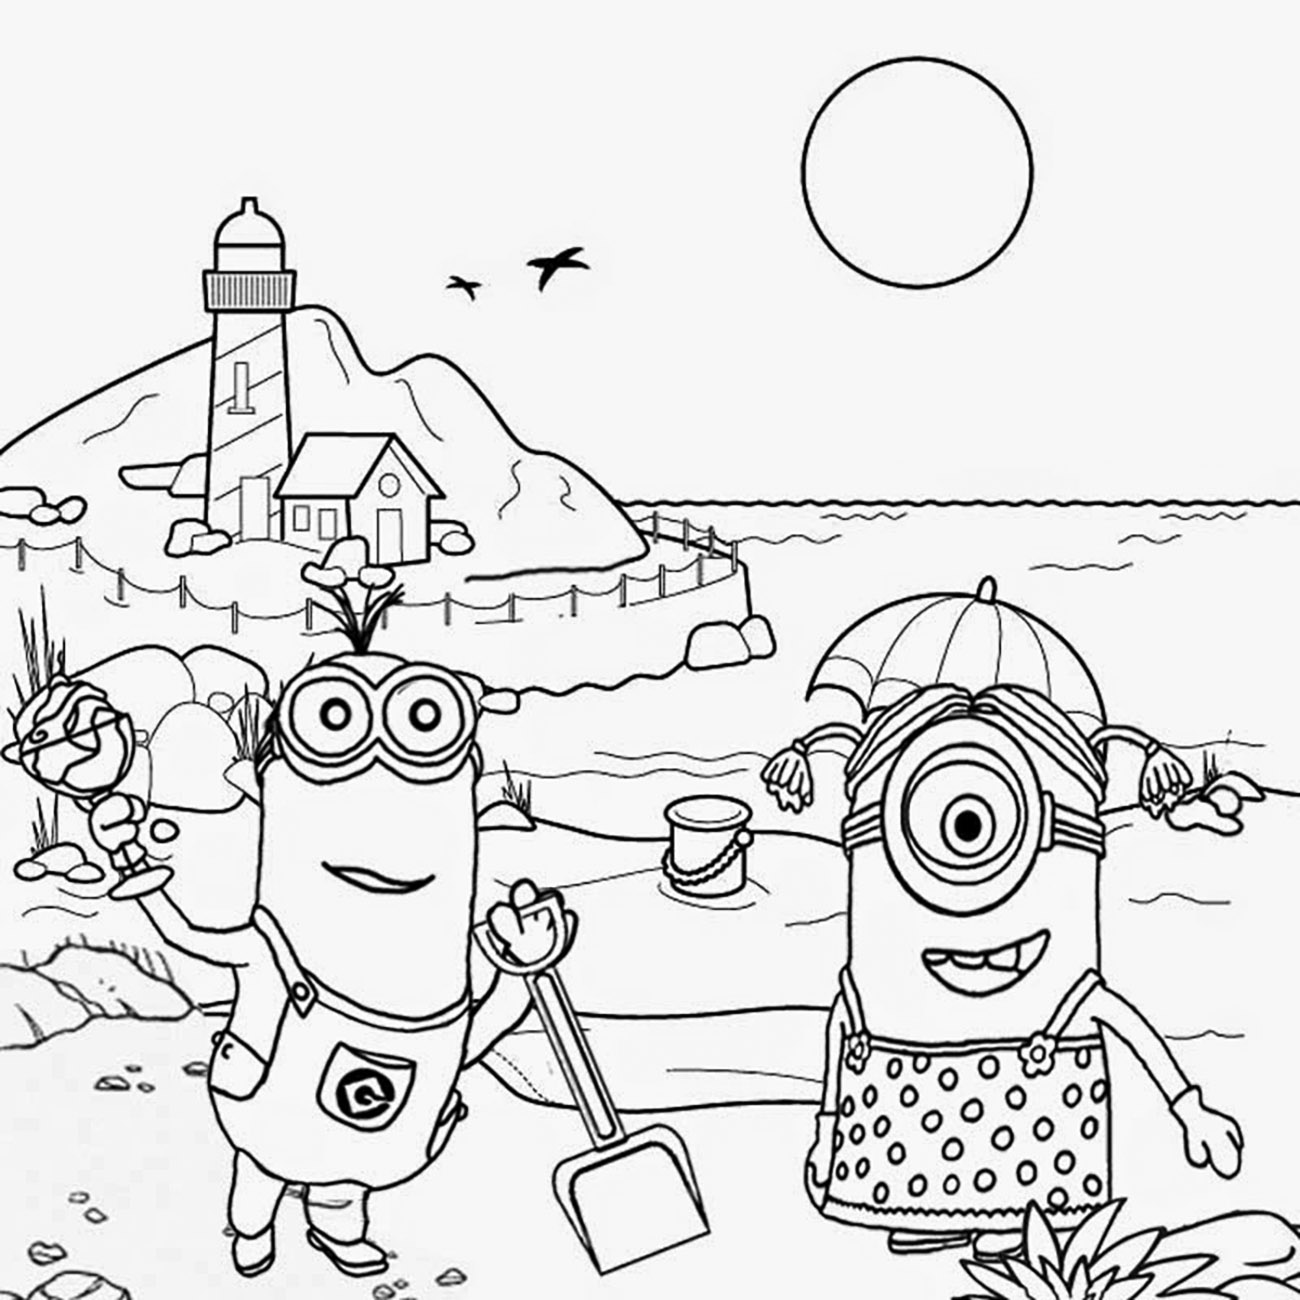 Minions to download for free - Minions Kids Coloring Pages